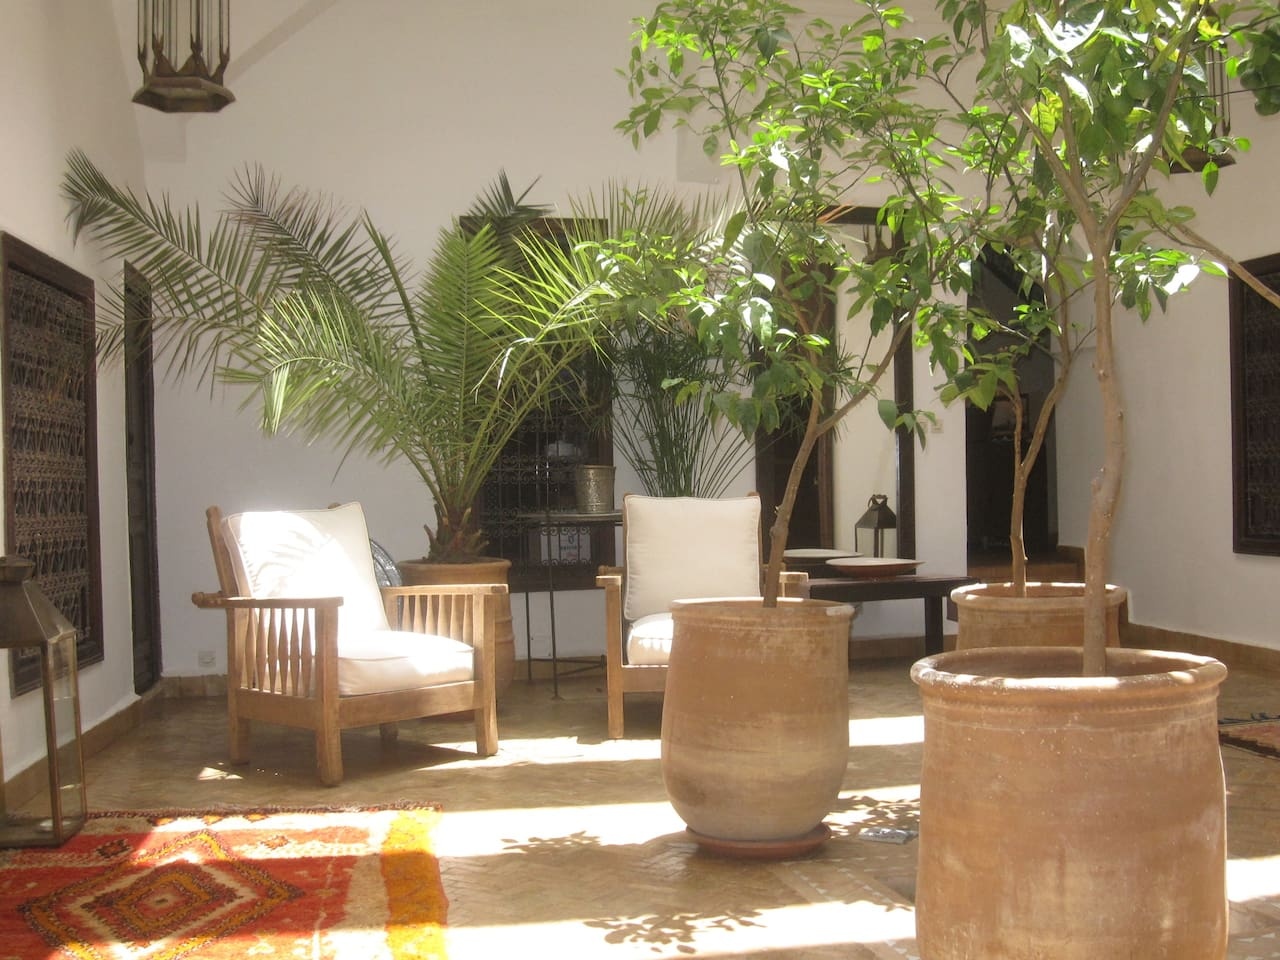 RIAD AZZA MARRAKECH LE PATIO